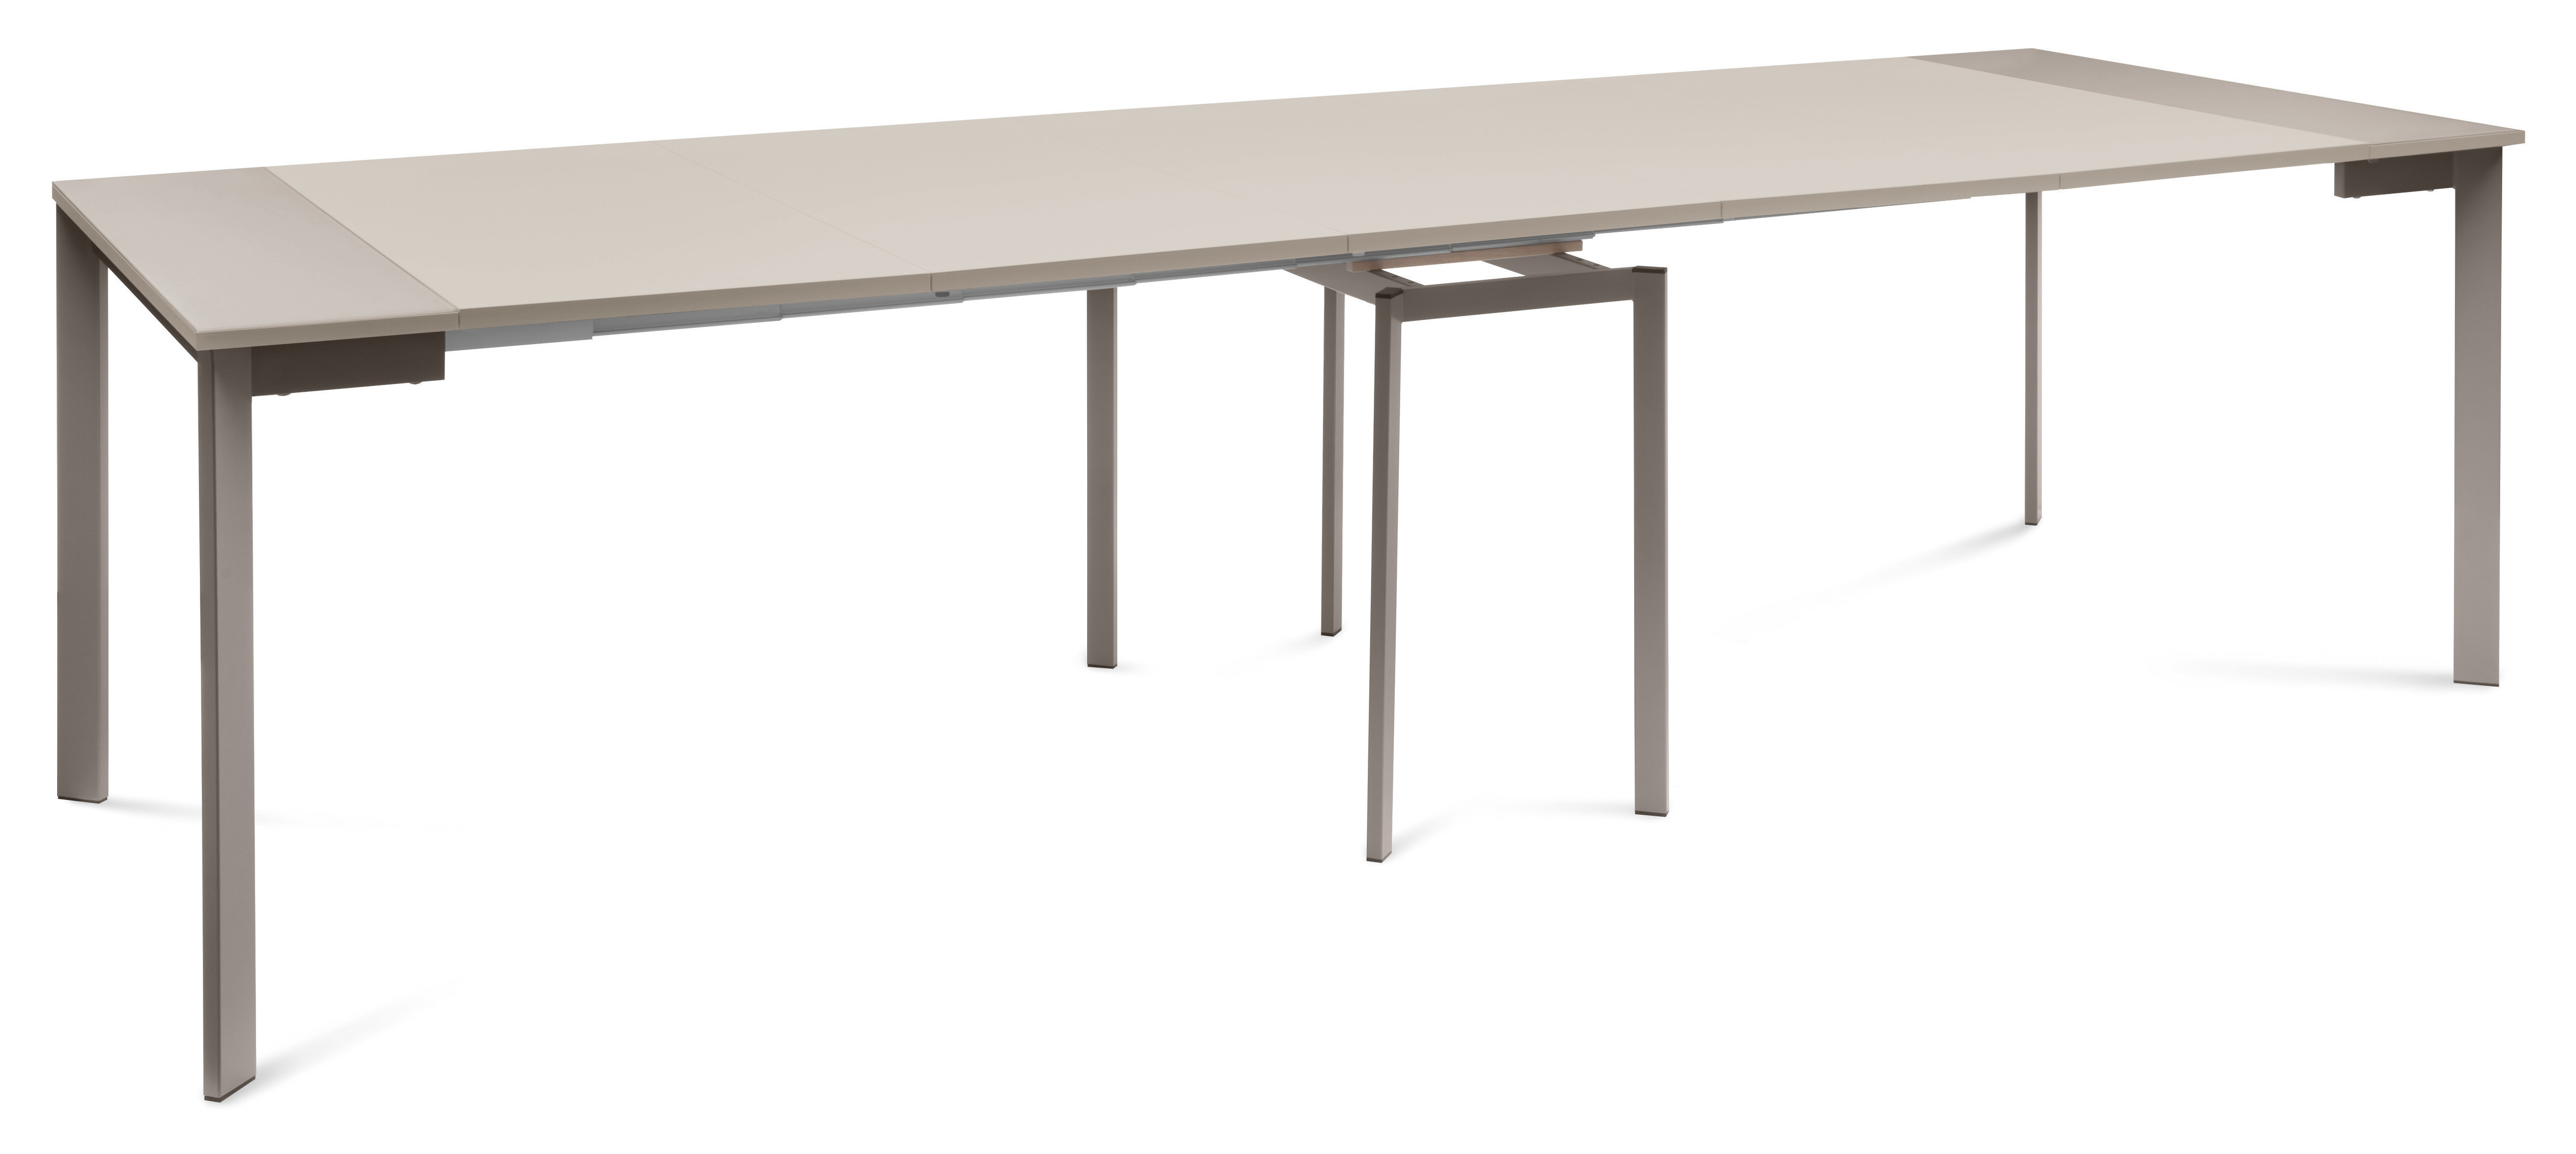 CONDOR CONSOLE / EXTENDING DINING TABLE-30900